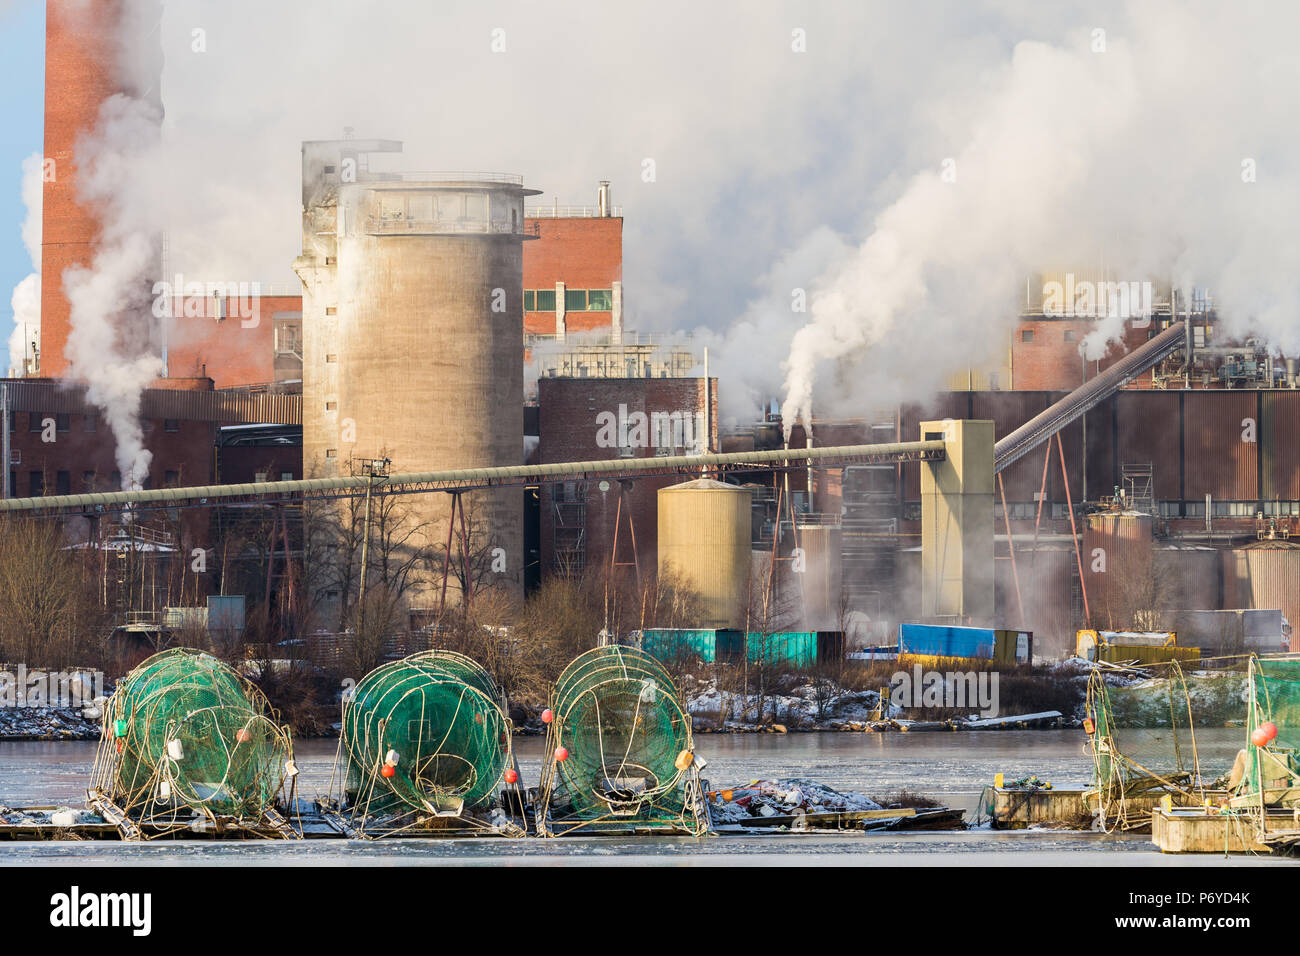 Green fykenets in front of steaming factory on sunny day - Stock Image